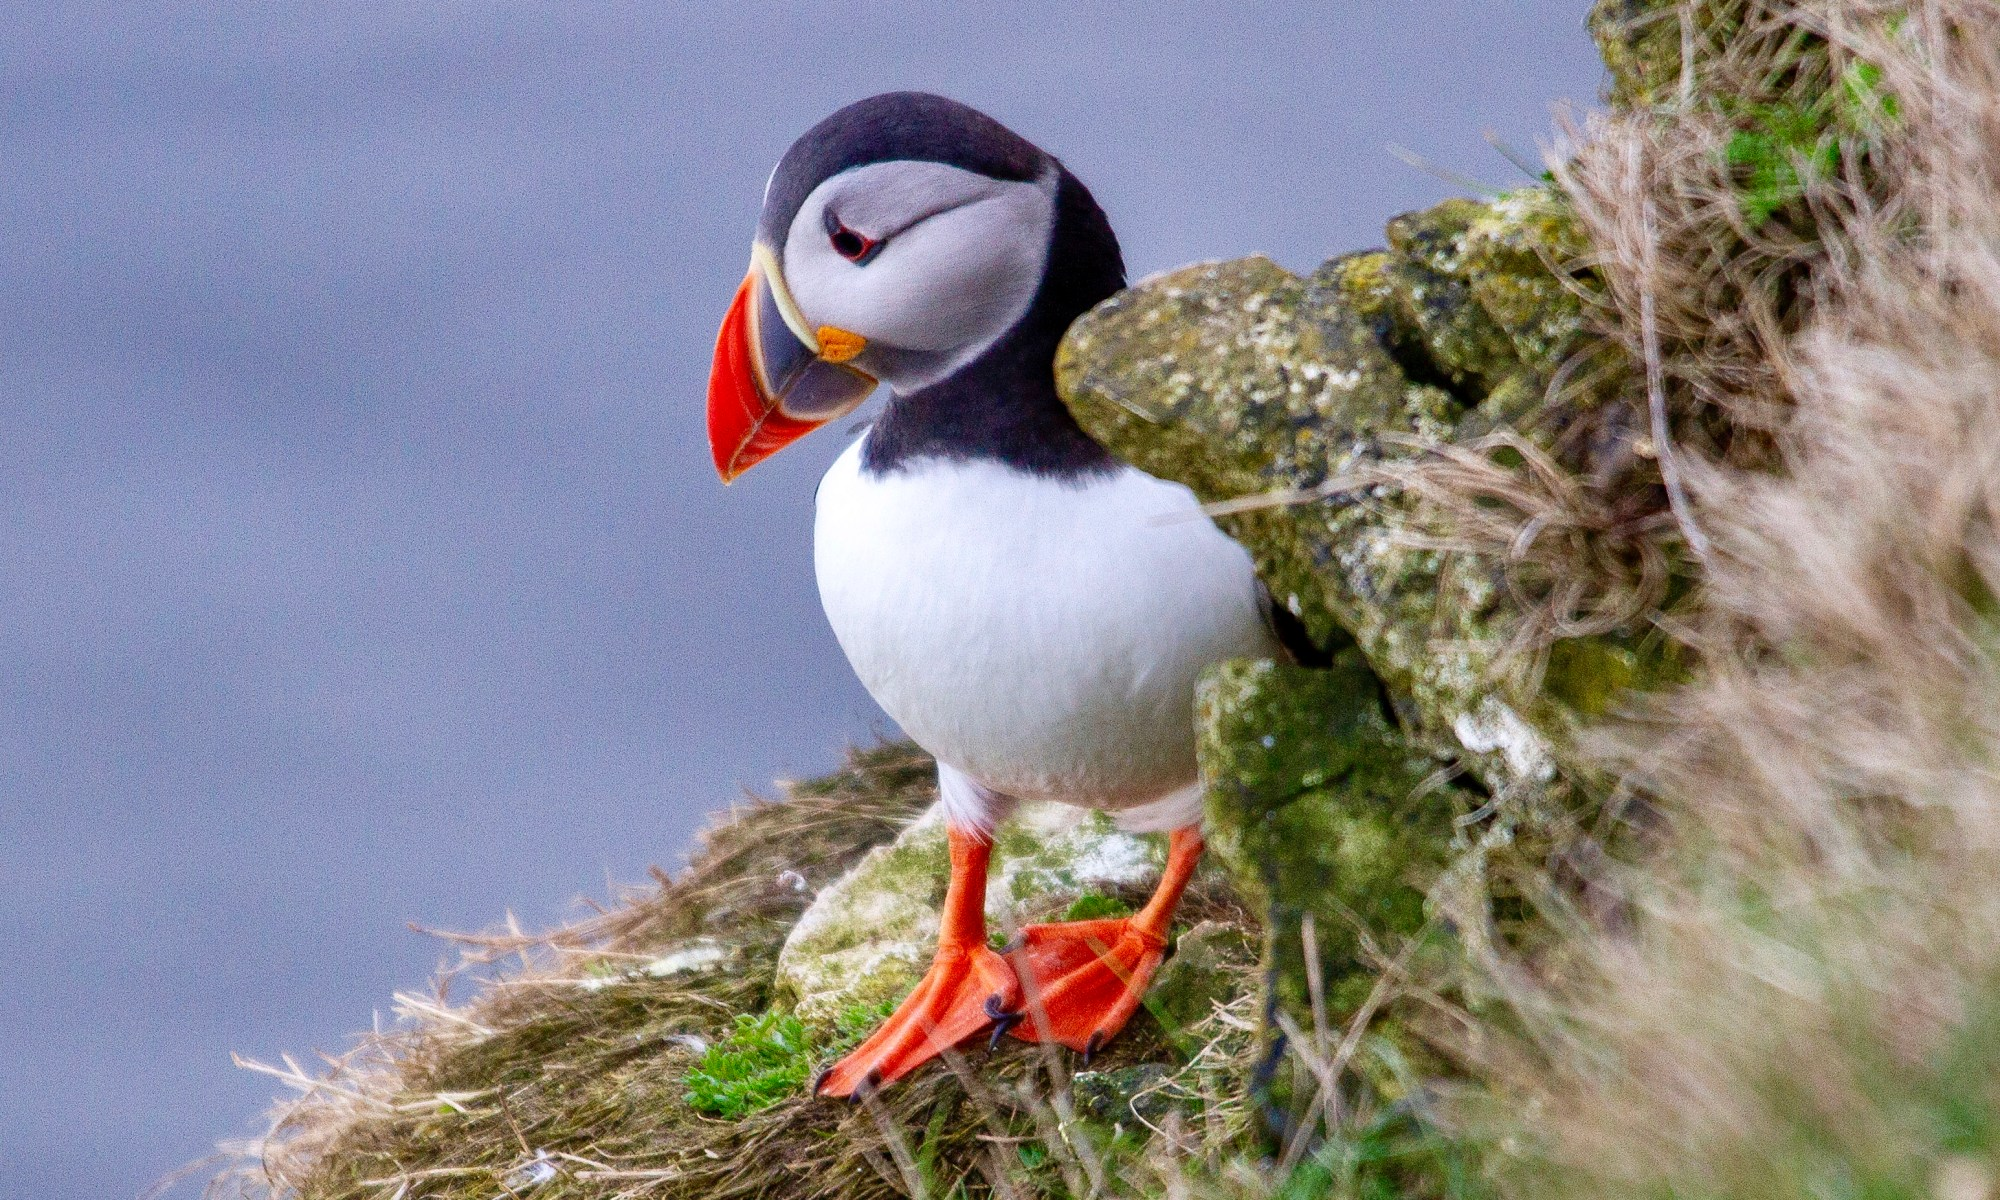 A newly arrived Puffin with bright plumage looking for his burrow in the cliff face